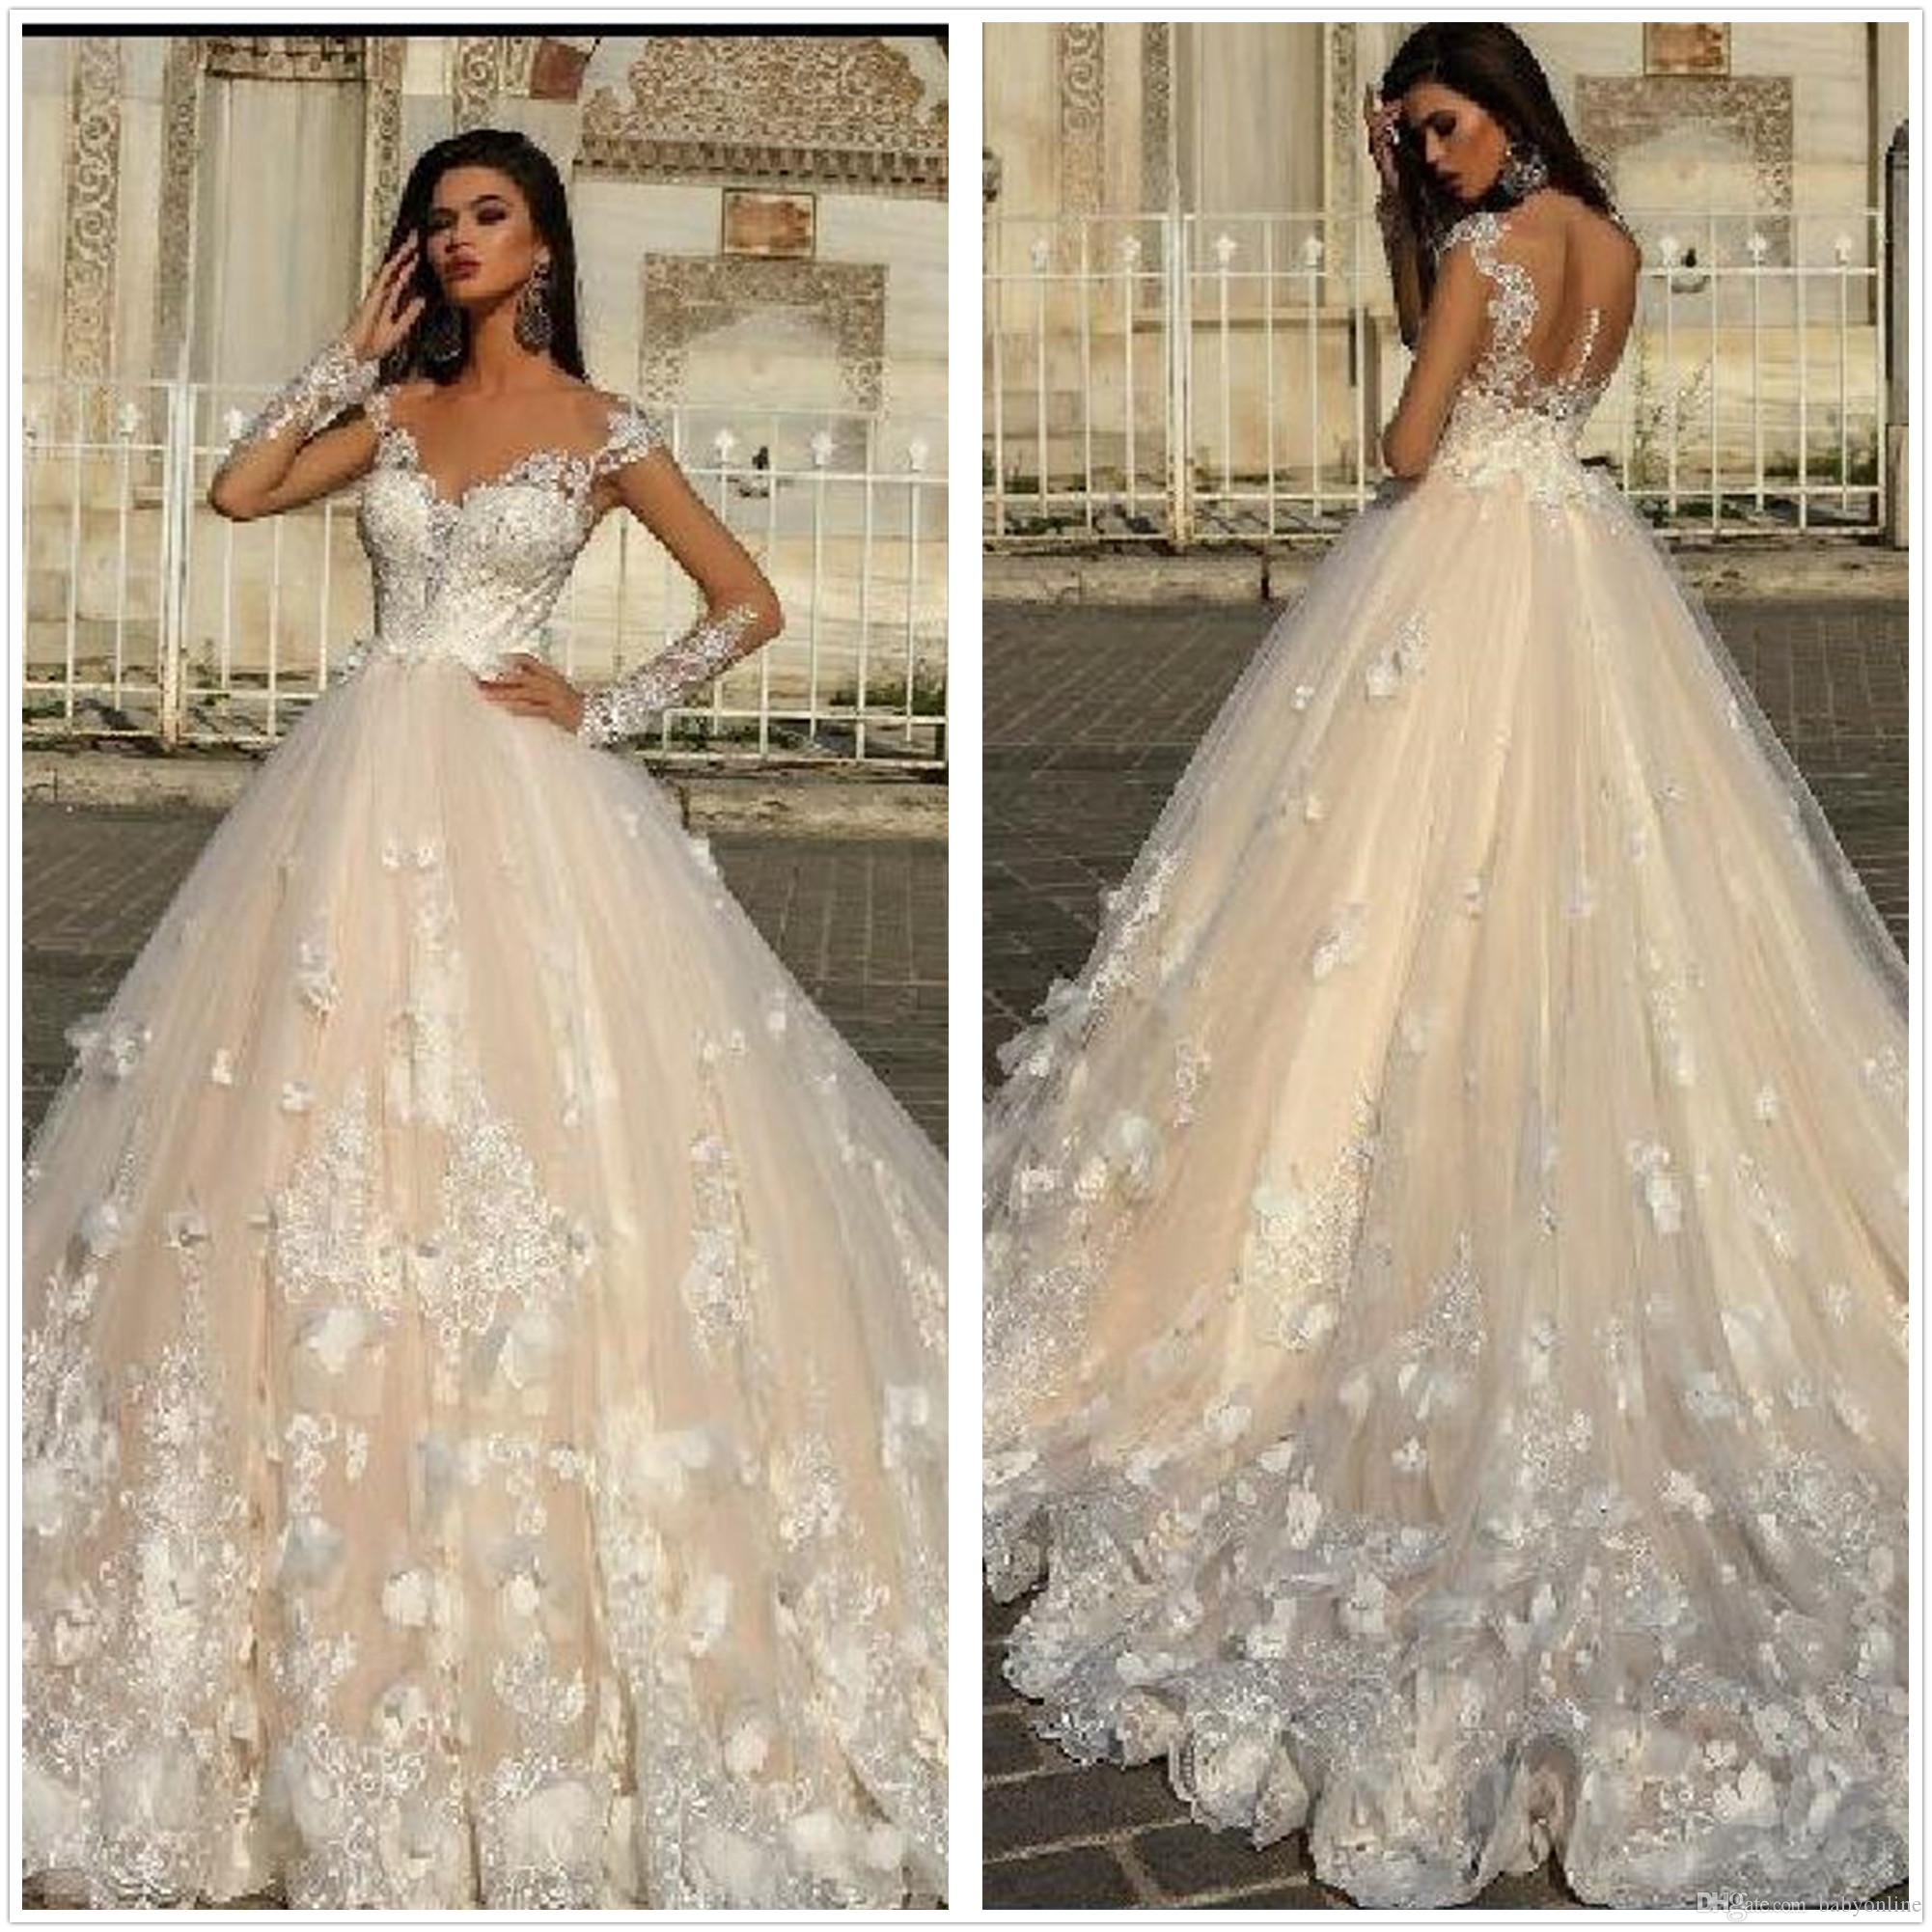 Discount Romantic 2018 Sheer Long Sleeves Lace A Line Wedding Dresses Tulle  Applique 3D Floral Wedding Bridal Gowns Vestido With Buttons Wedding  Collection ... 1df1b52e74d2